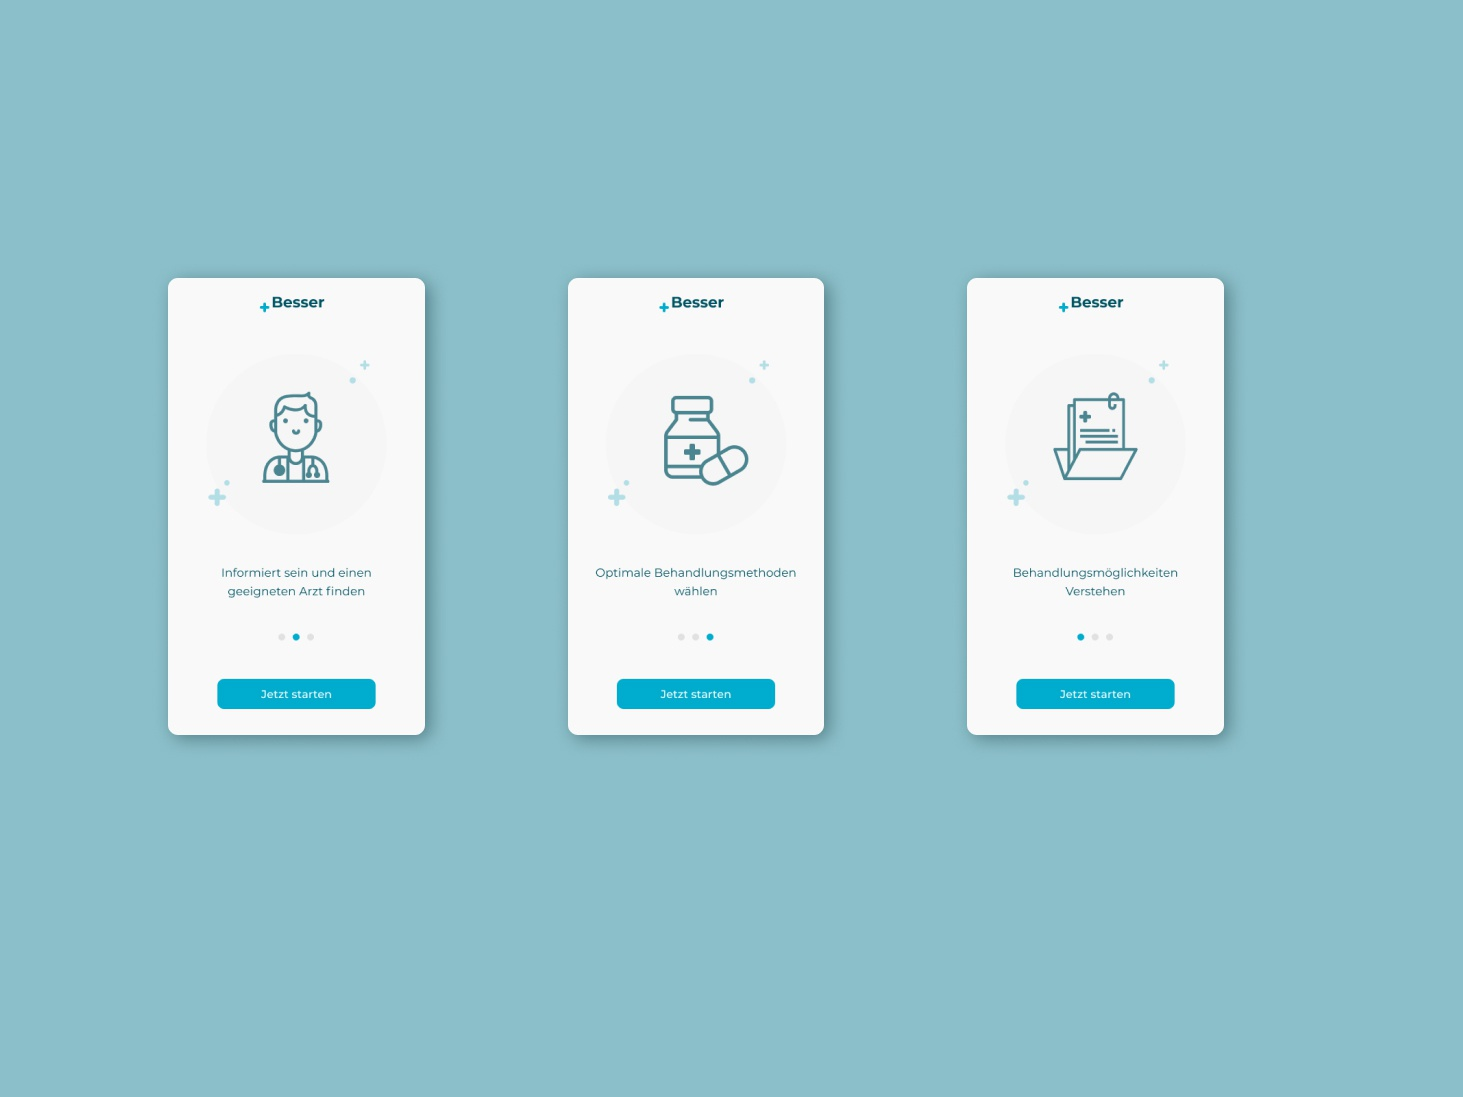 App Onboarding Screens for Medical App +Besser clean medical blue figma app web appdesign product design branding logo ui app design ux productdesign design uxui